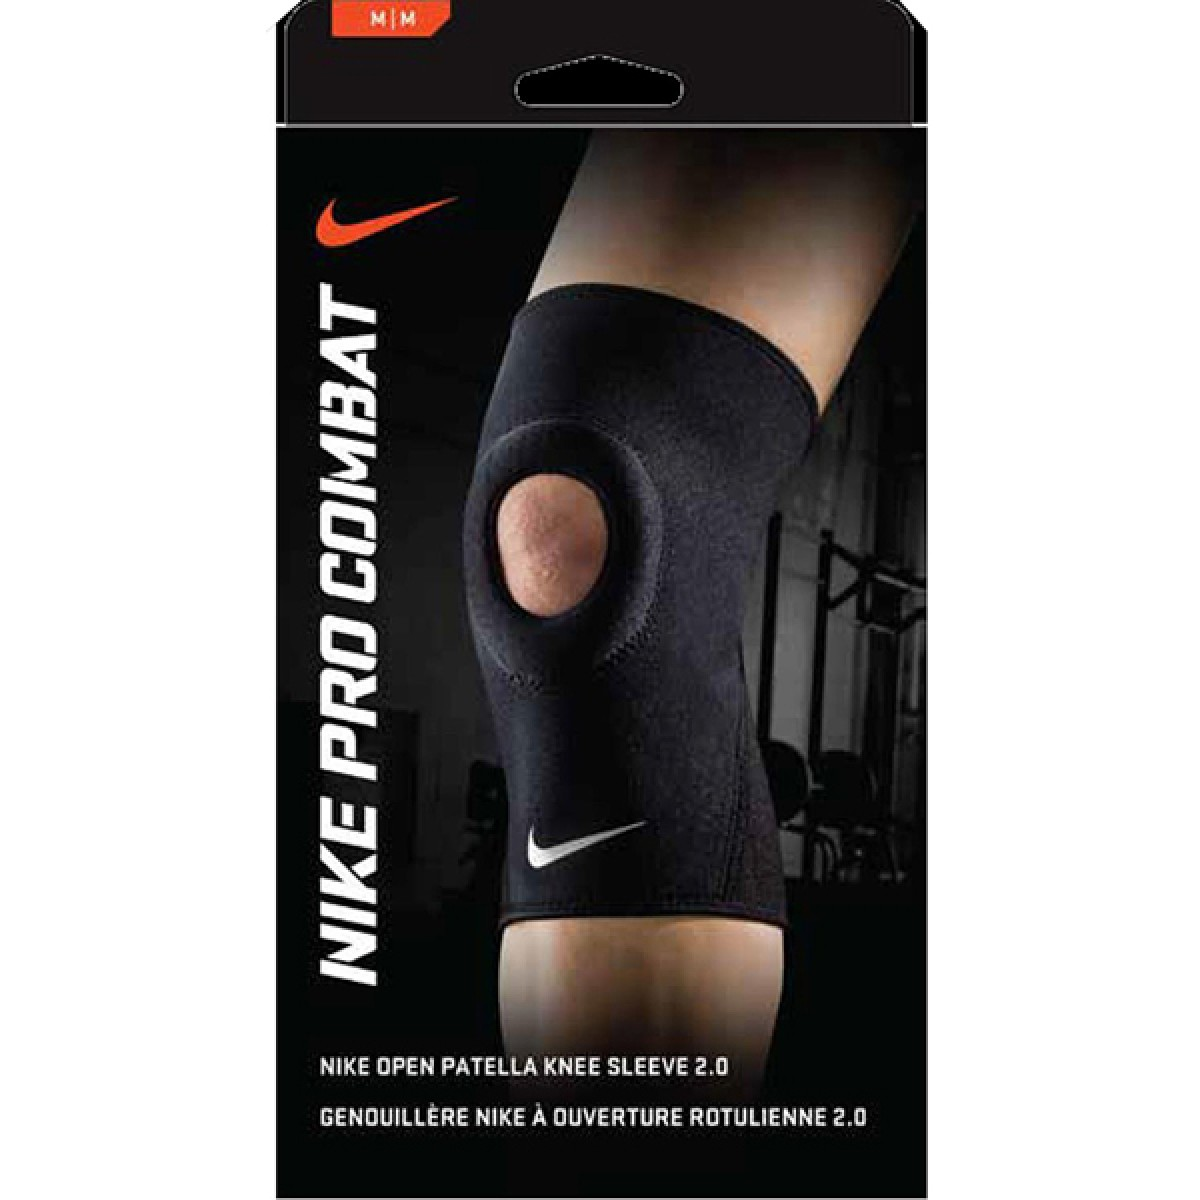 GENOUILLERE NIKE A OUVERTURE ROTULIENNE 2.0